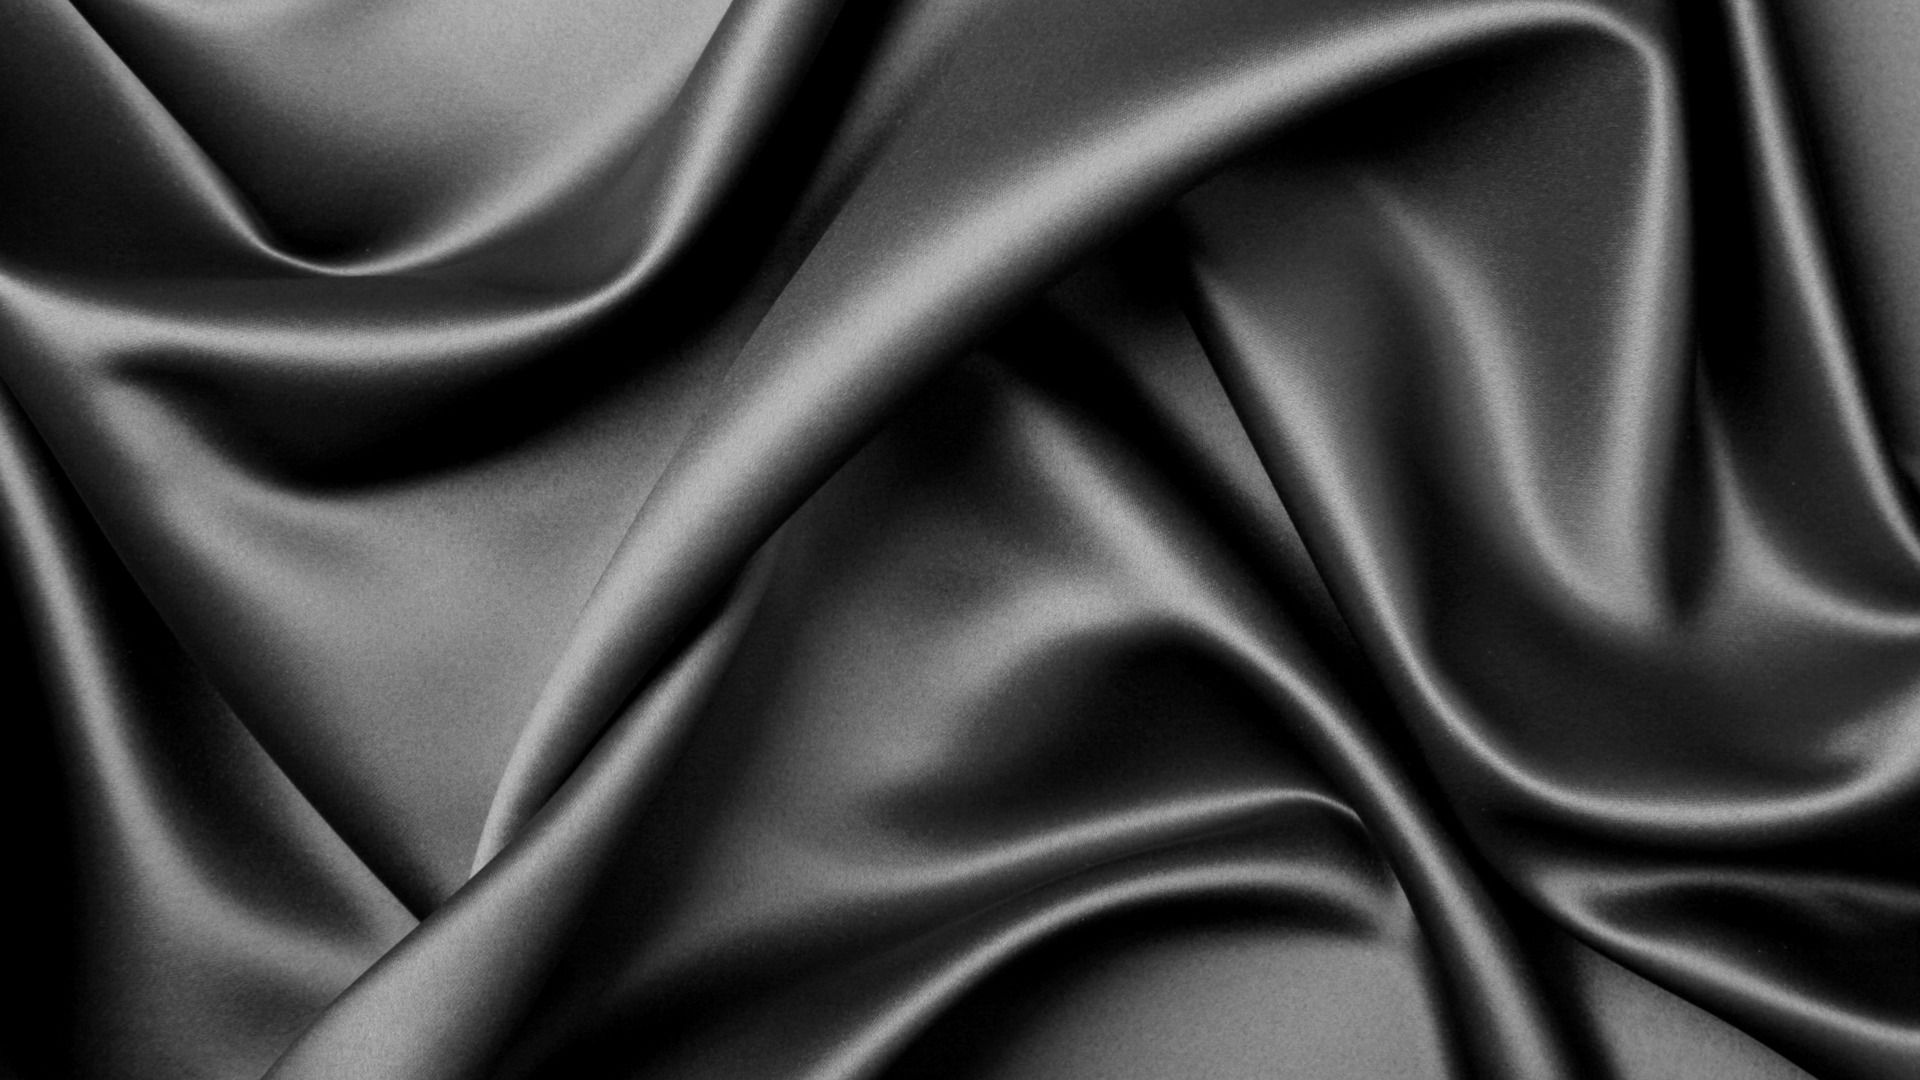 wallpaper silk ivory wave - photo #12